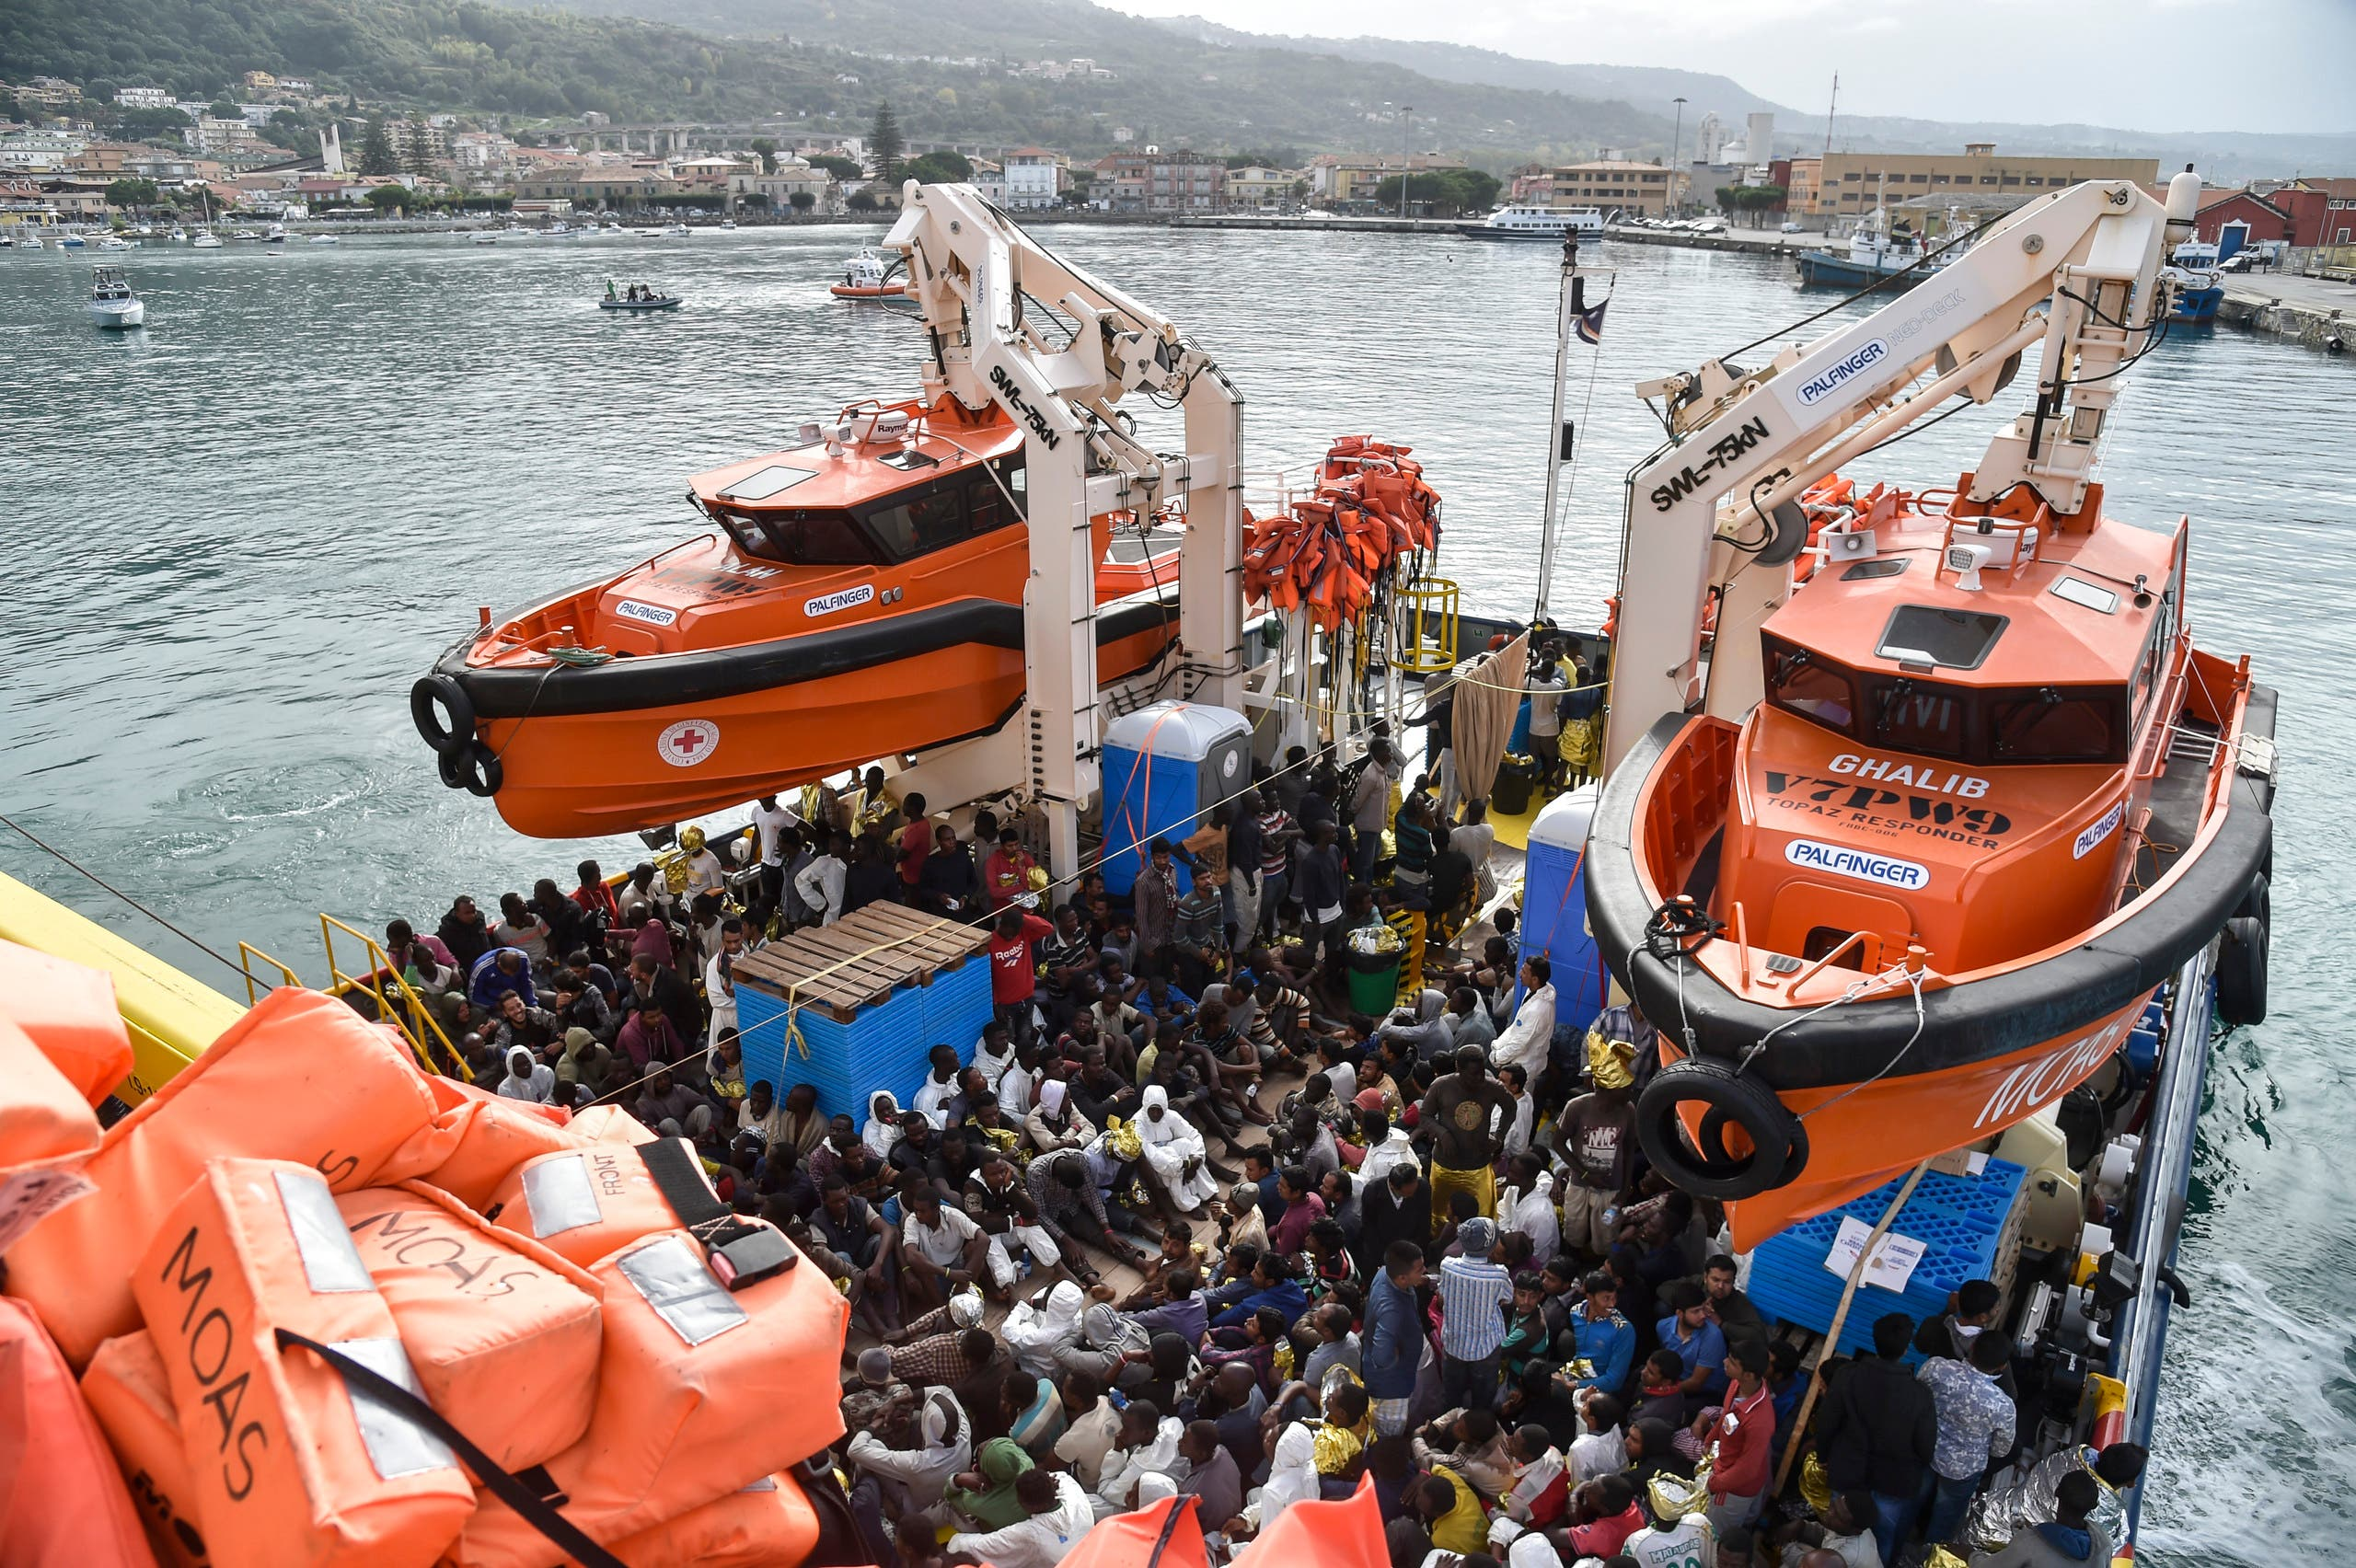 A rescue ship arrives in the harbor of Vibo Valentia, southern Italy, with 400 migrants and refugees from Central Africa and Syria on board, on November 7, 2016 following a rescue operation off the Libyan coast in the Mediterranean Sea. (File photo: AFP)